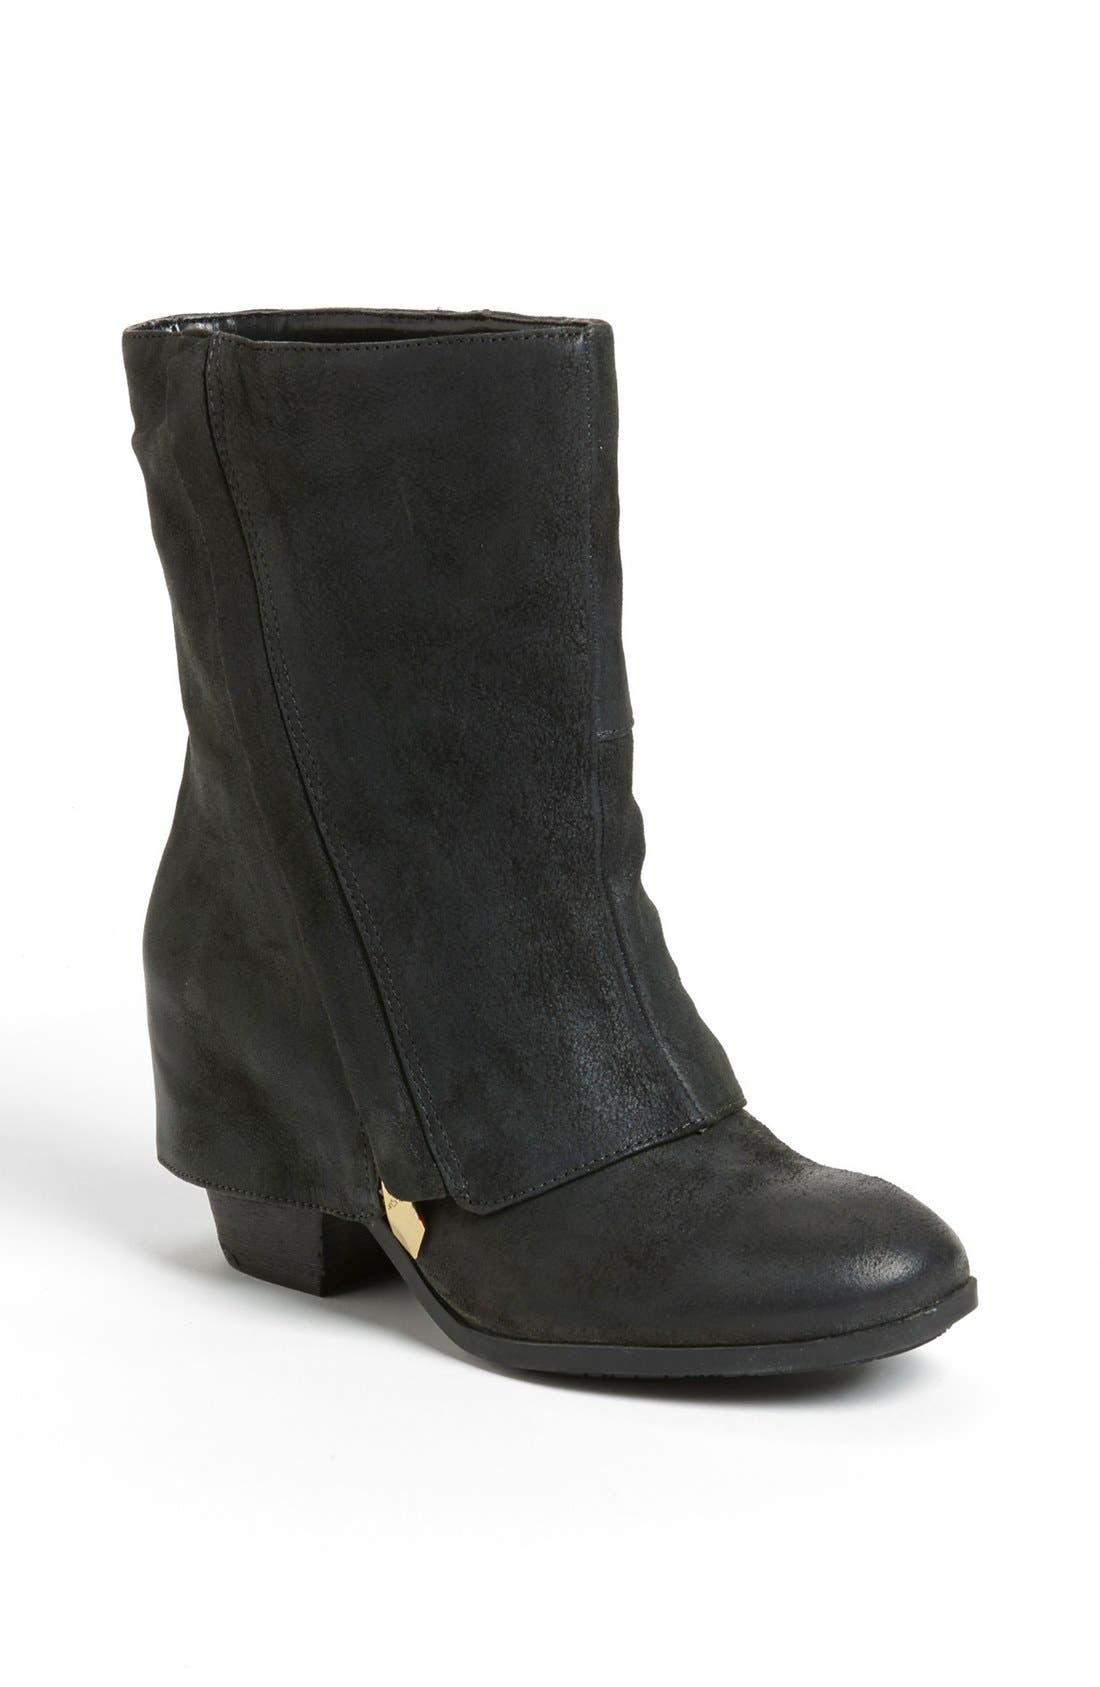 Alternate Image 1 Selected - Fergie 'Cameo' Boot